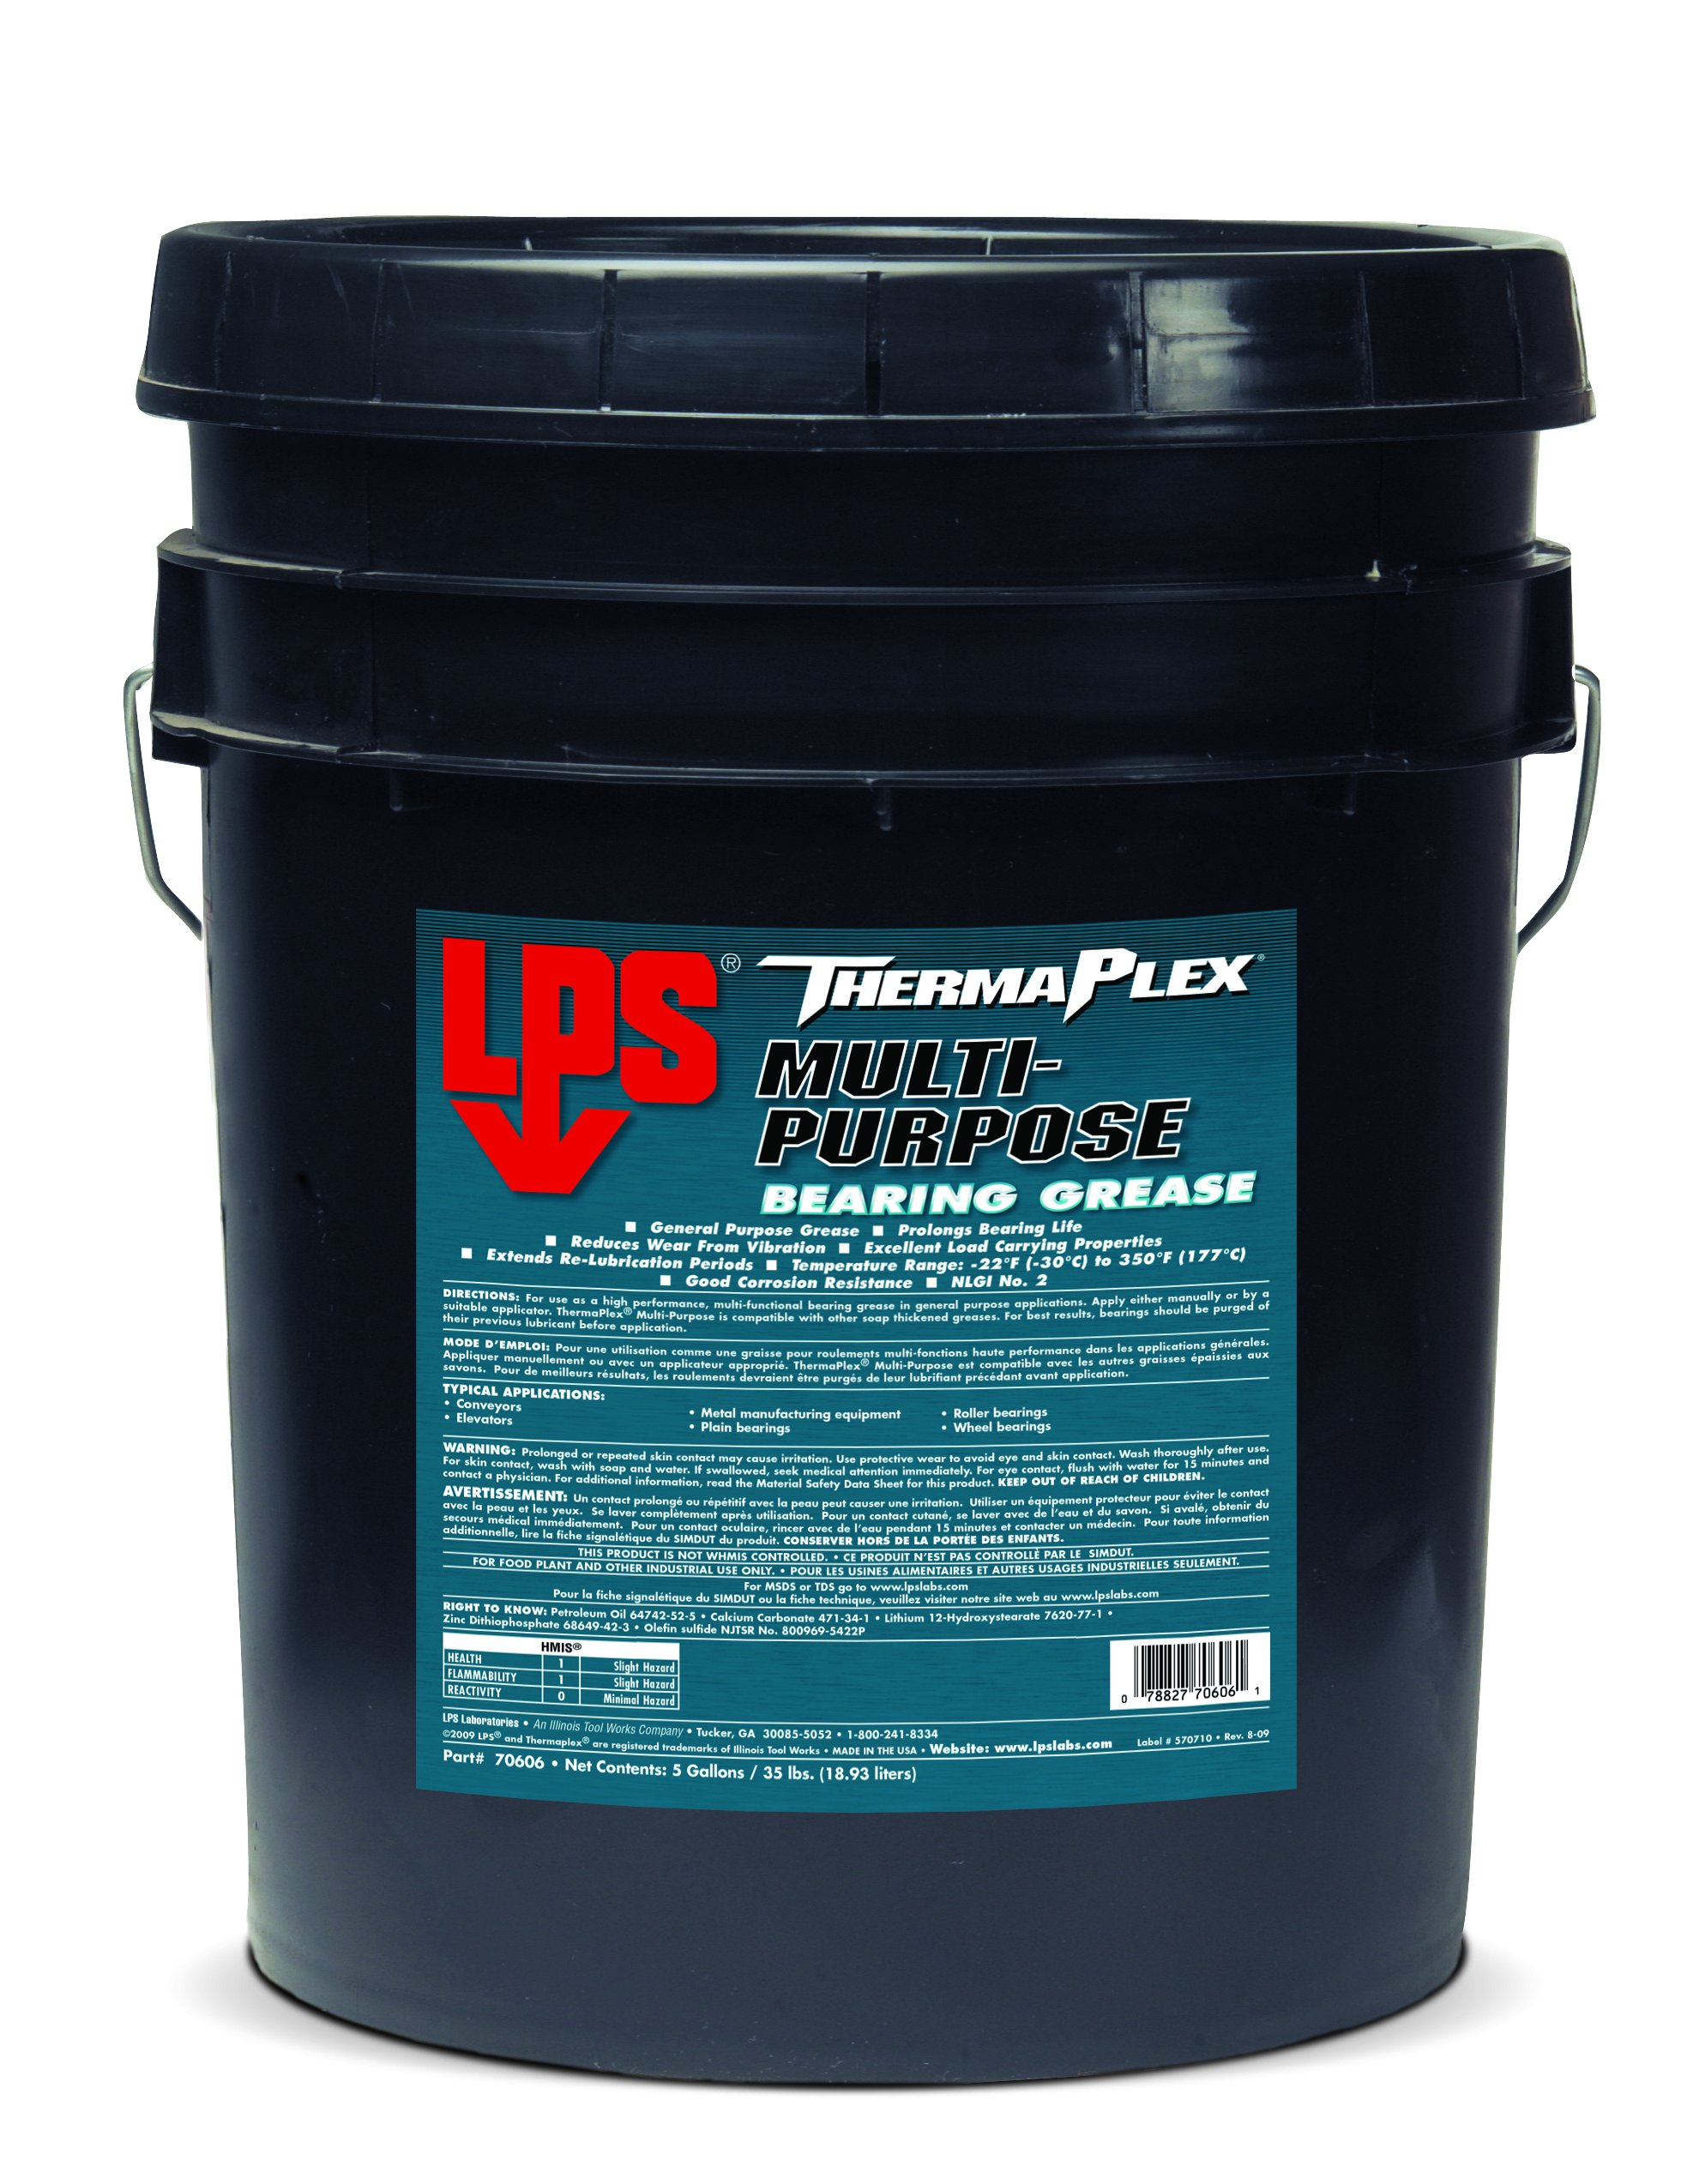 LPS ThermaPlex Multi-Purpose Bearing Grease, 35 lbs